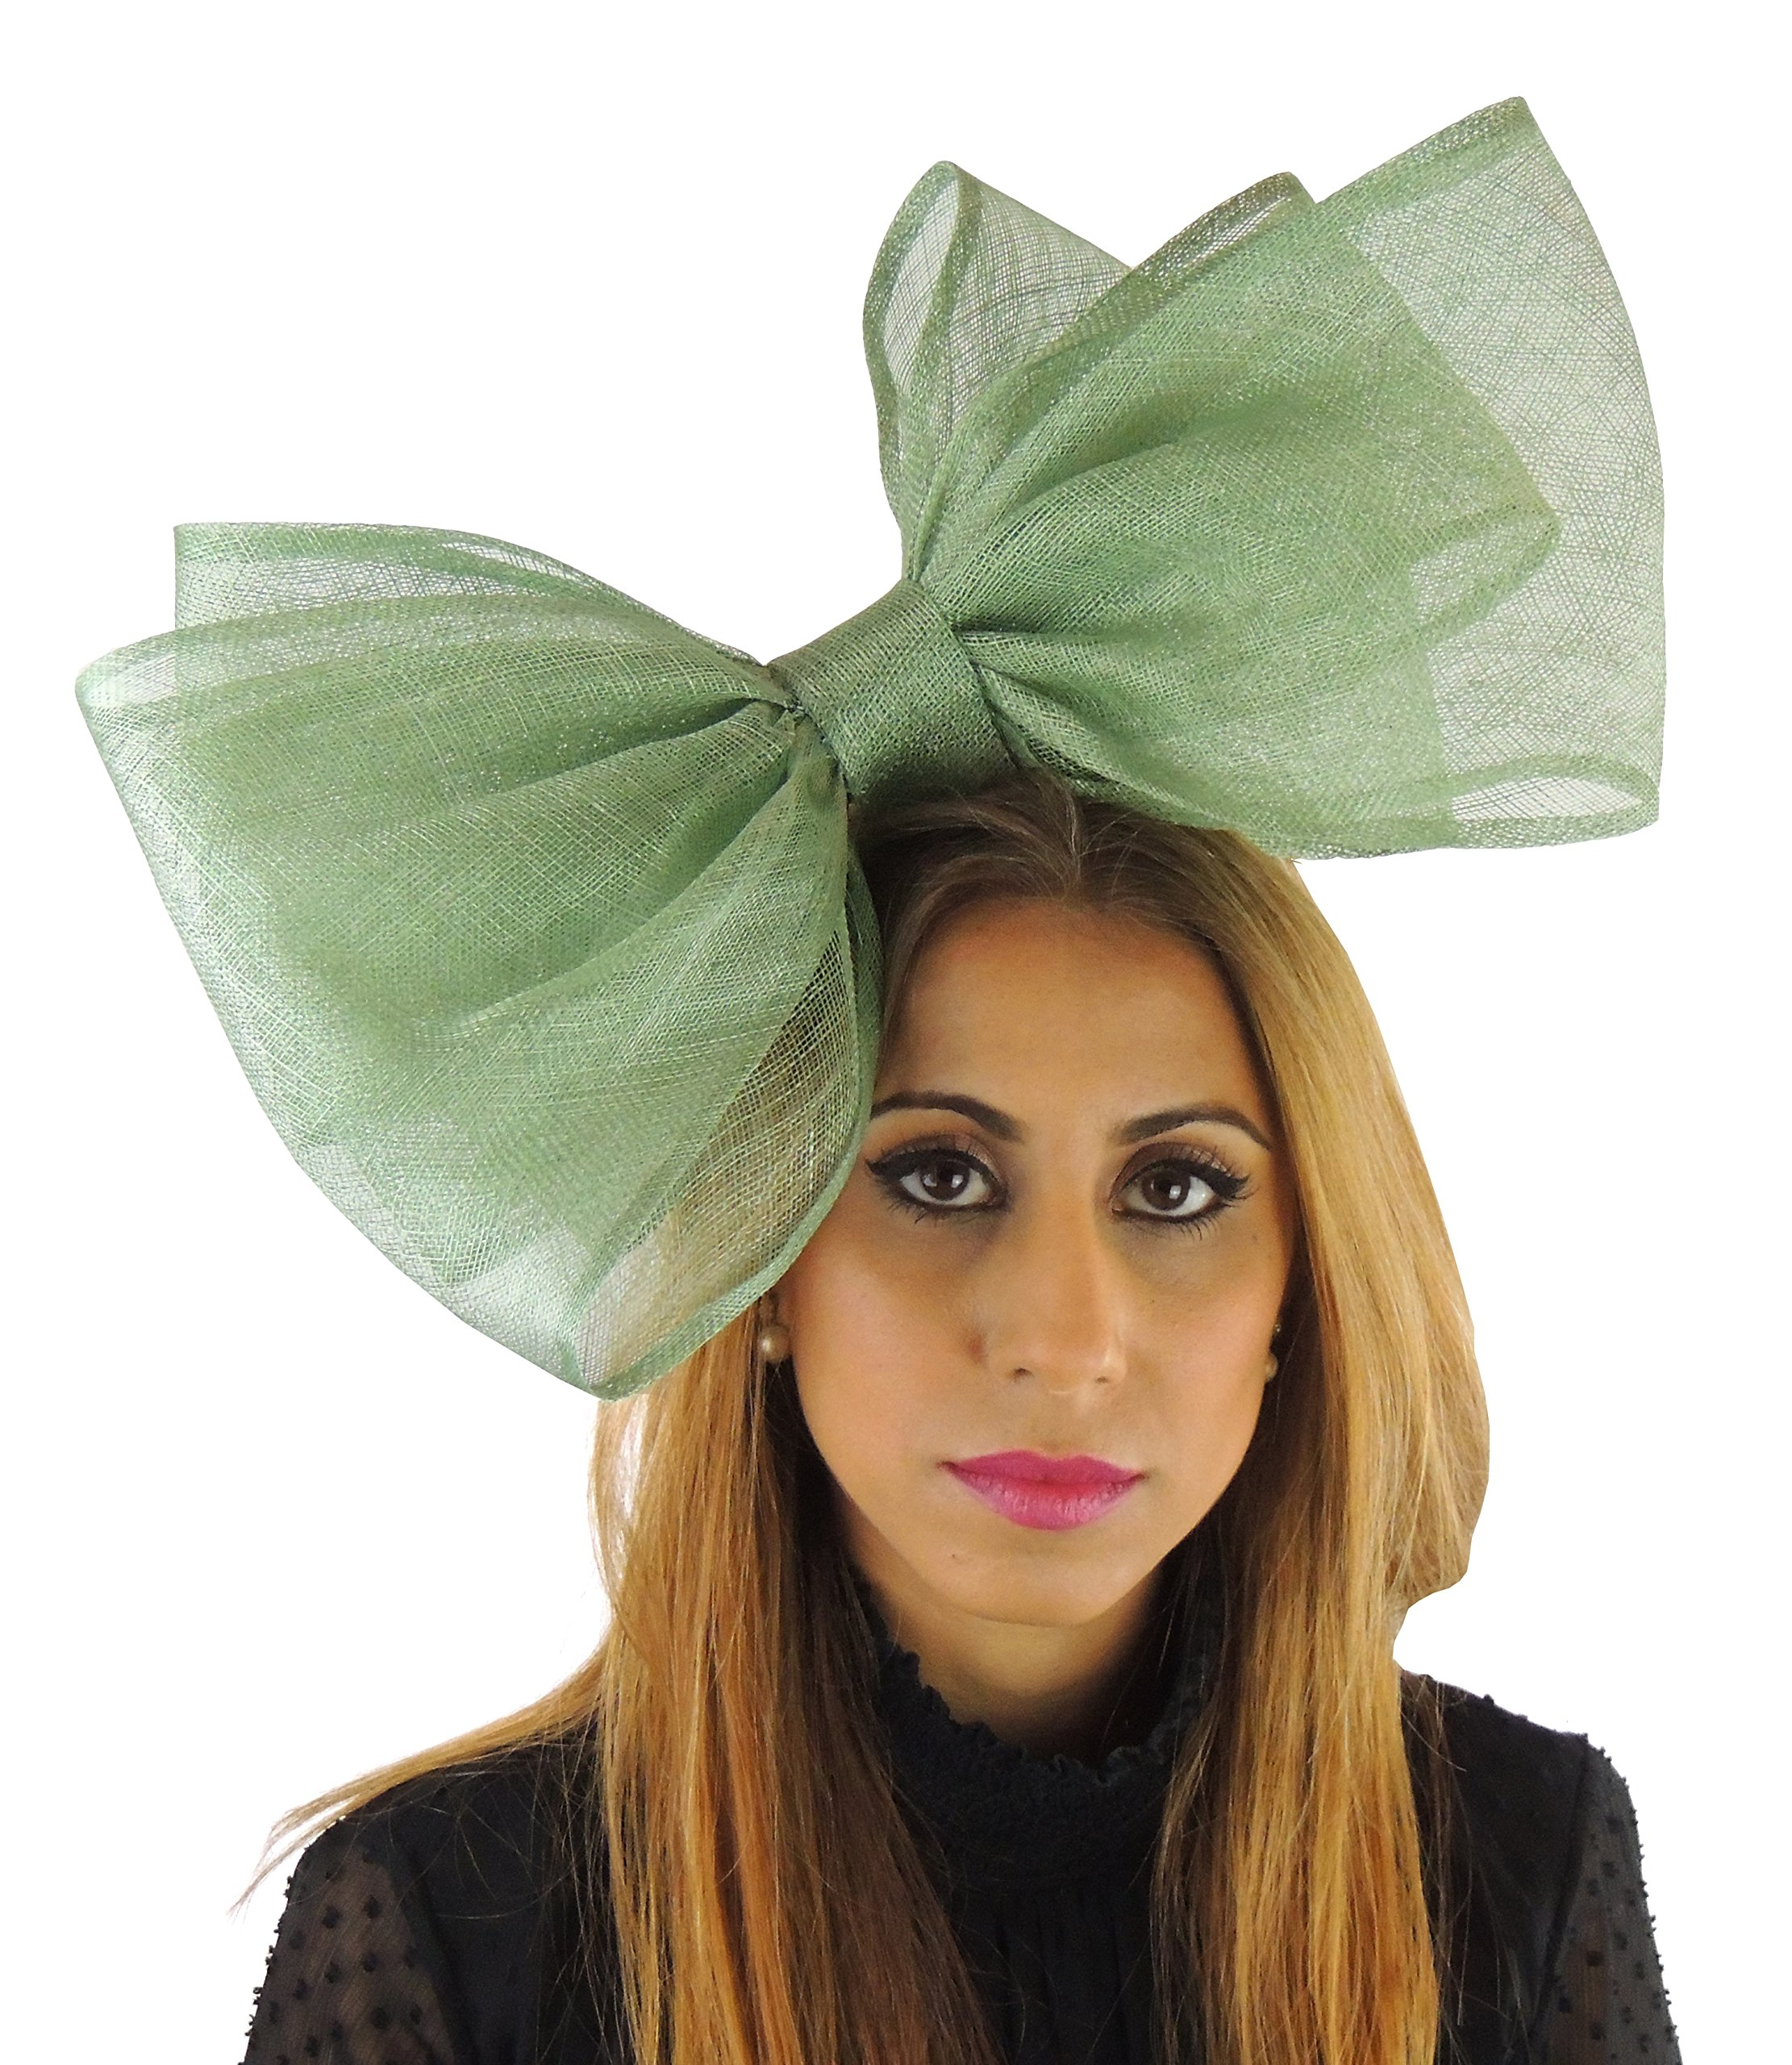 Hats By Cressida Ladies Sinamay Bow Ascot Fascinator Hat With Headband Moss Green by Hats By Cressida